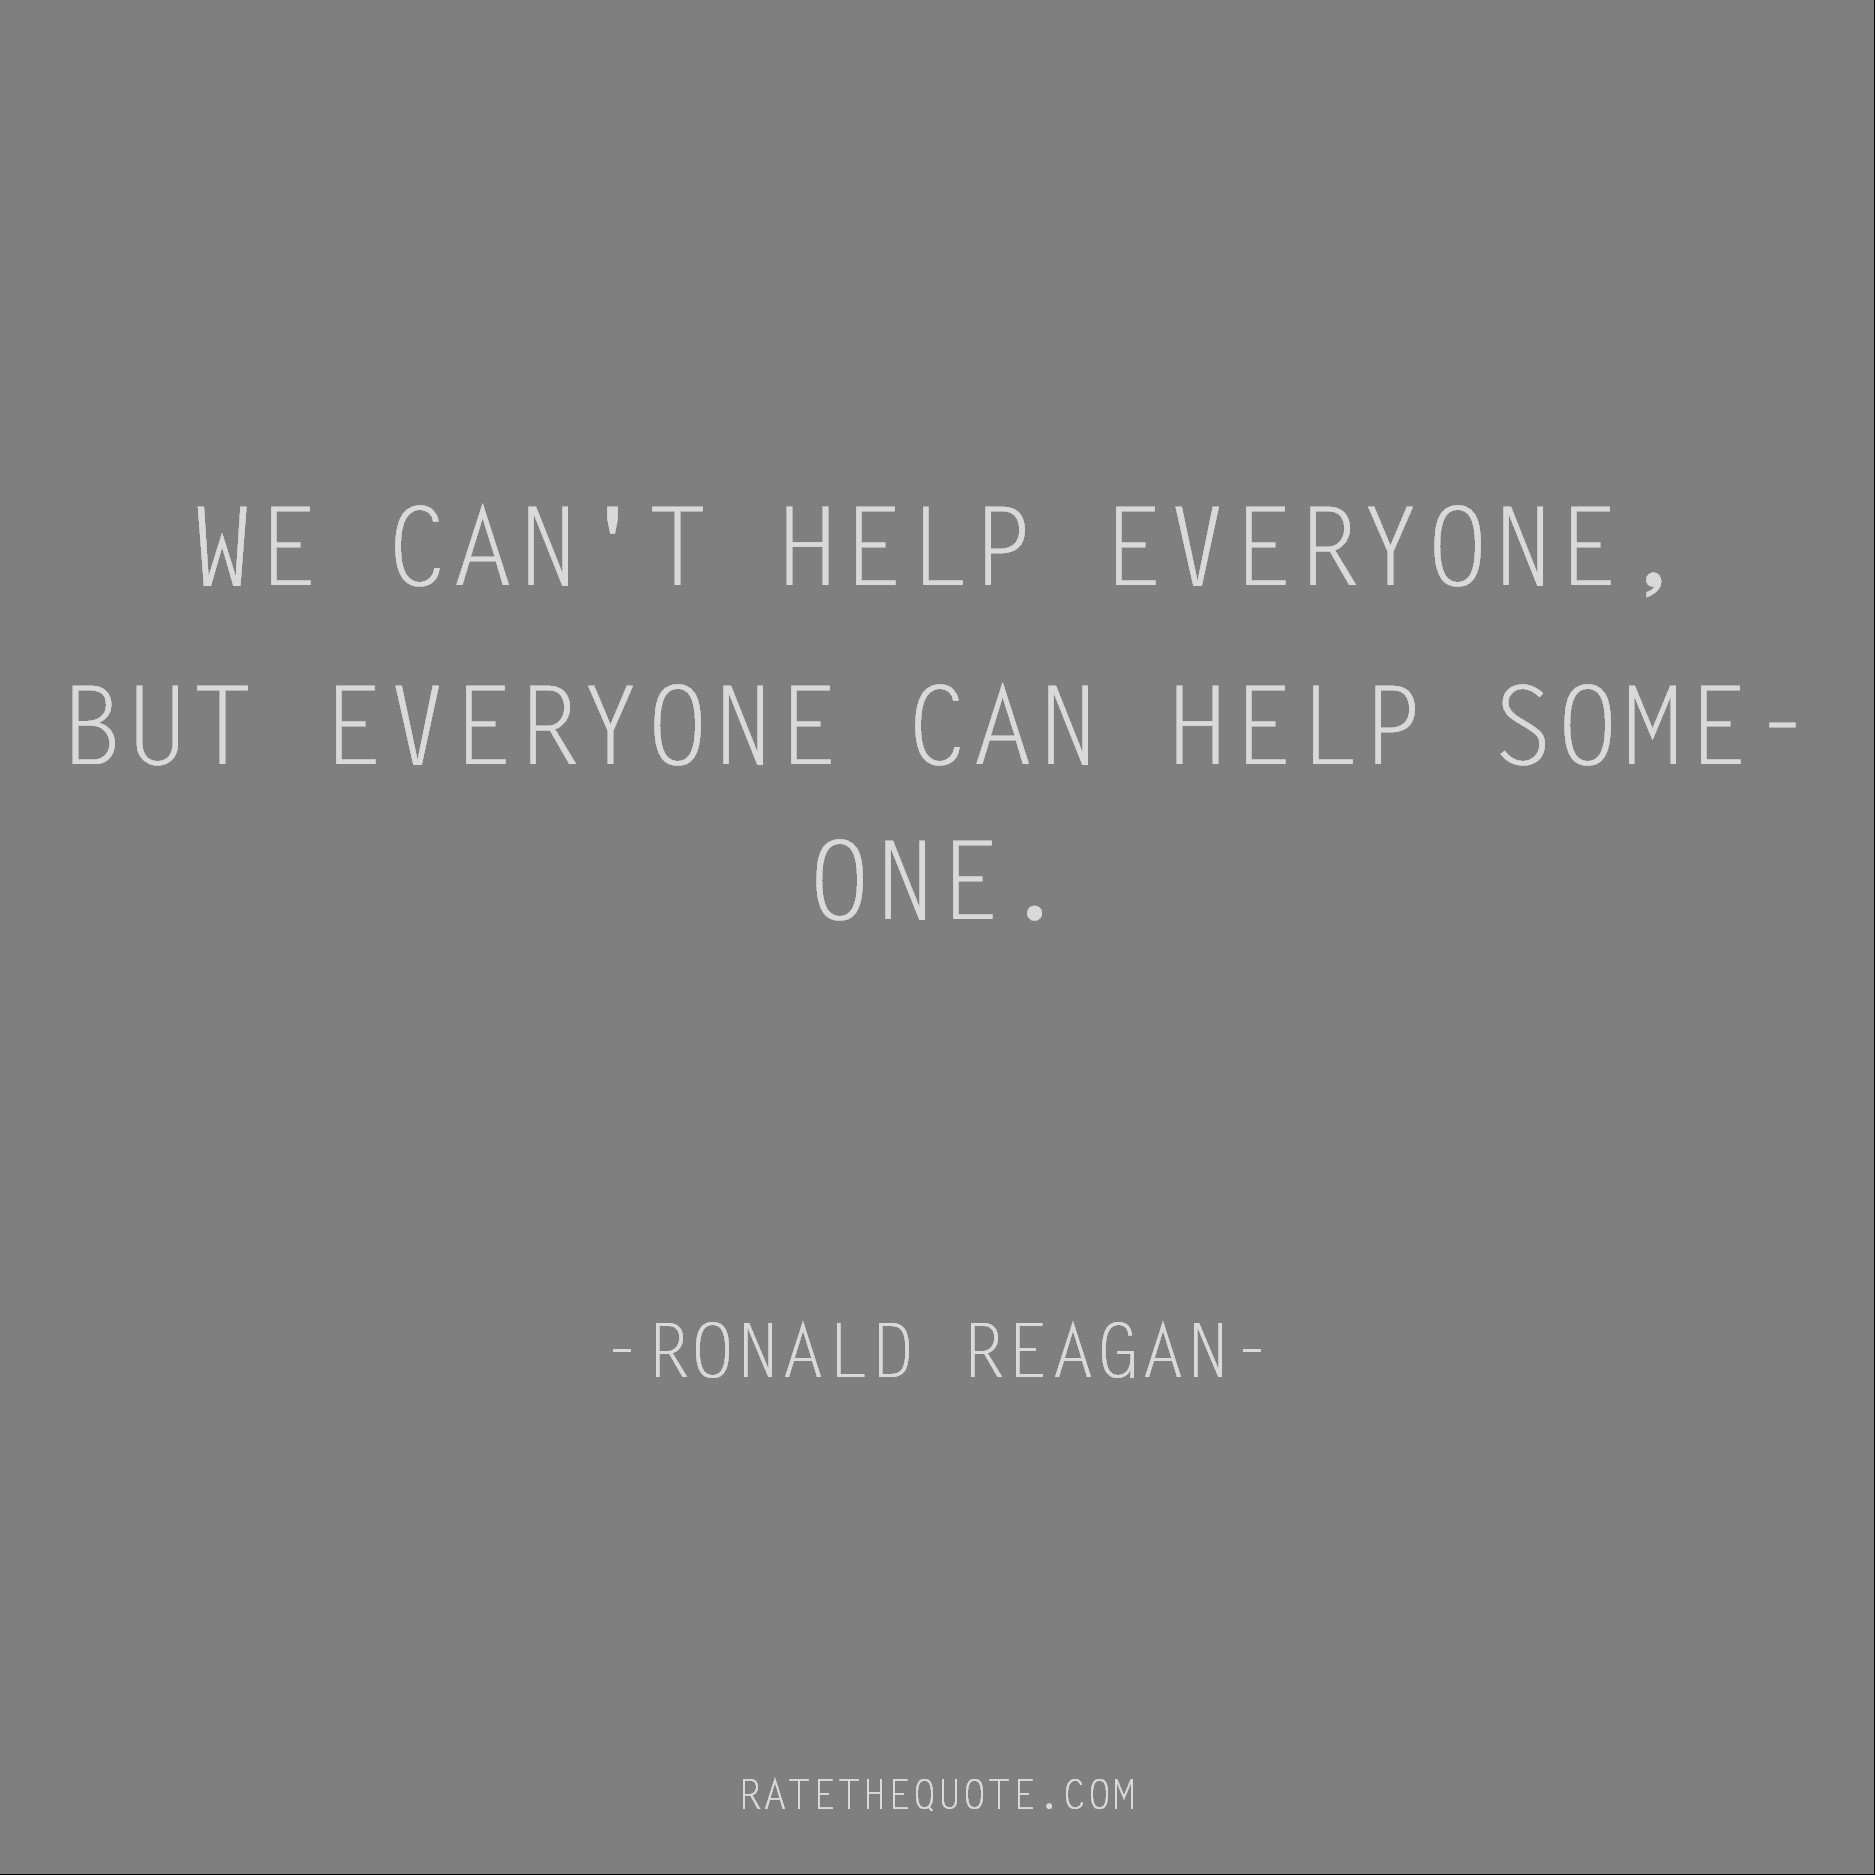 Inspirational Quotes We can't help everyone, but everyone can help someone. Ronald Reagan